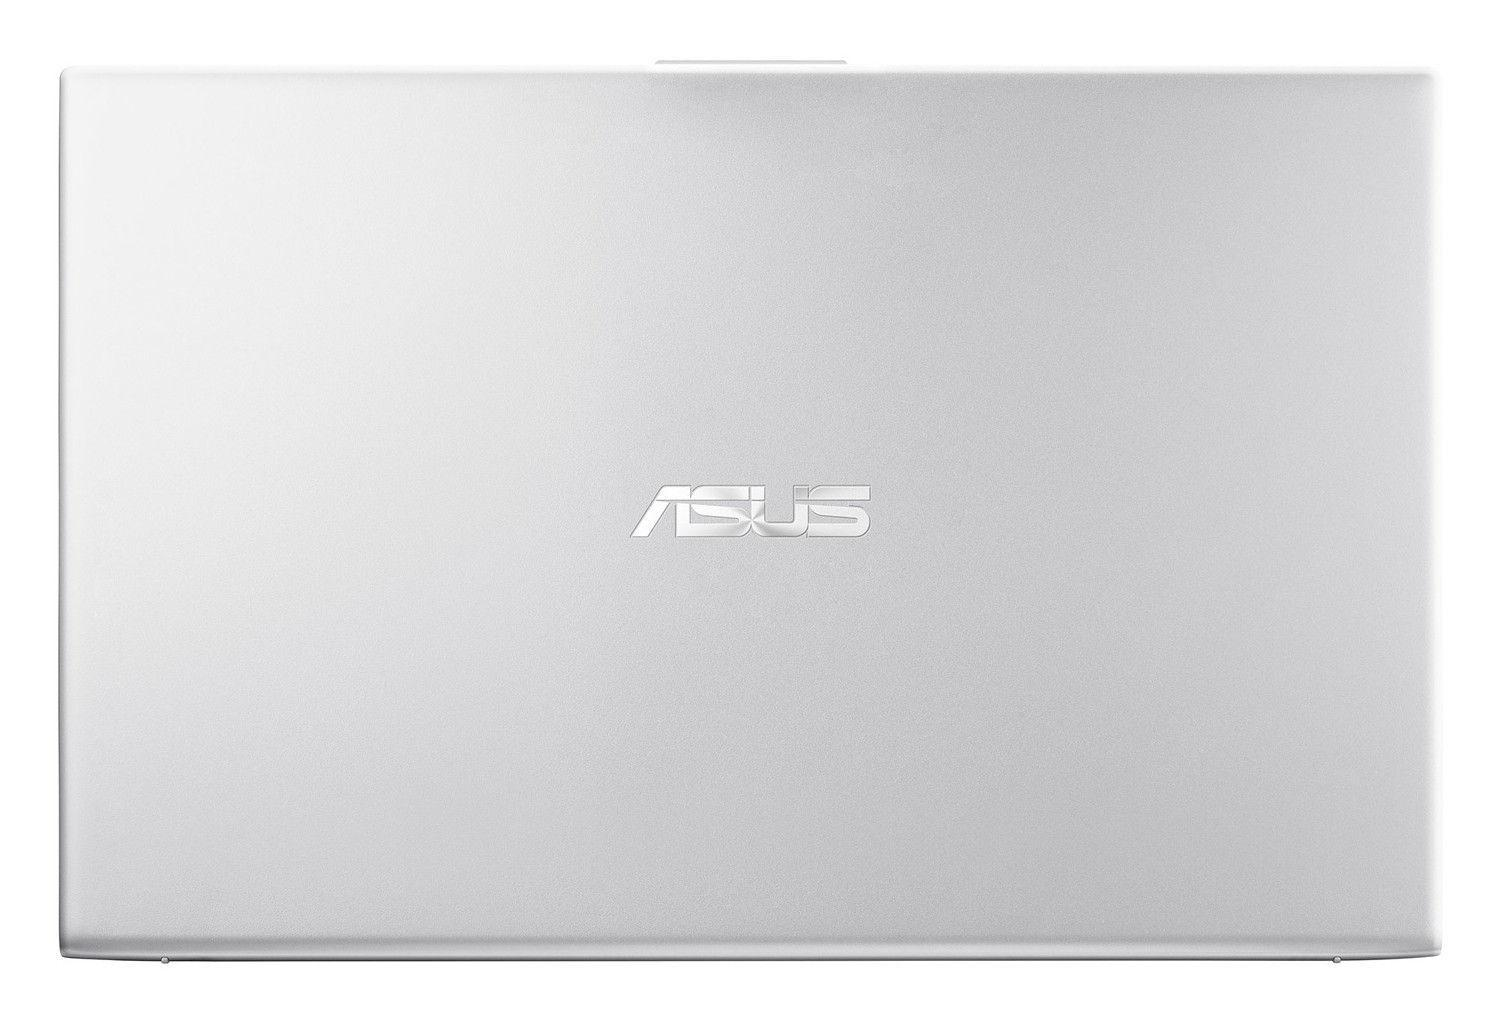 Ordinateur portable Asus VivoBook X712FB-AU121T Argent - SSD, MX110 - photo 6